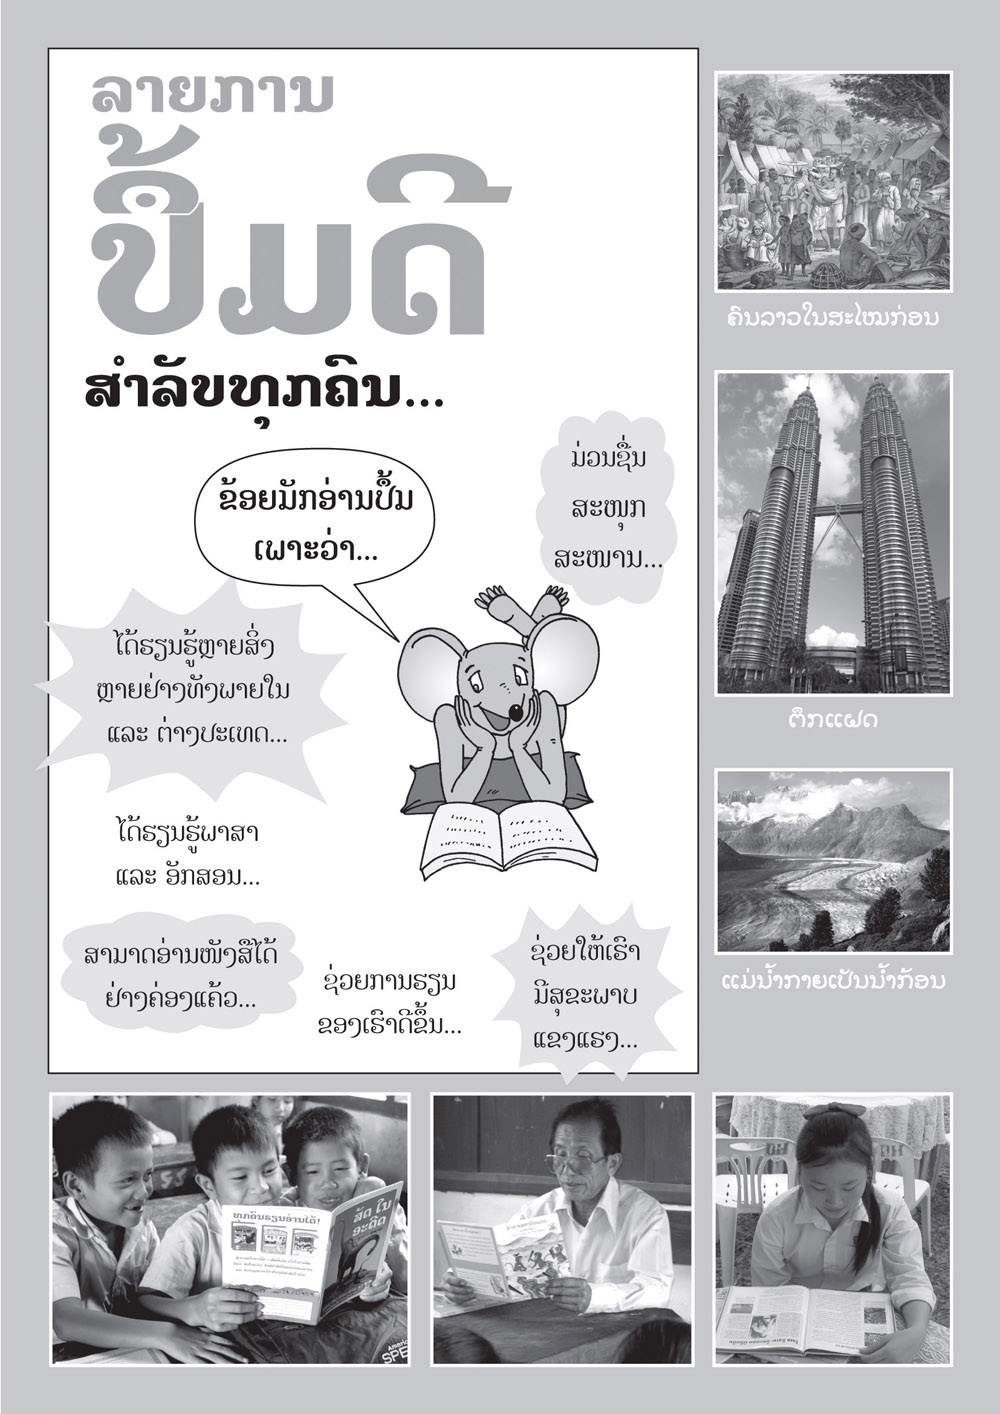 High School catalog large book cover, published in Lao language